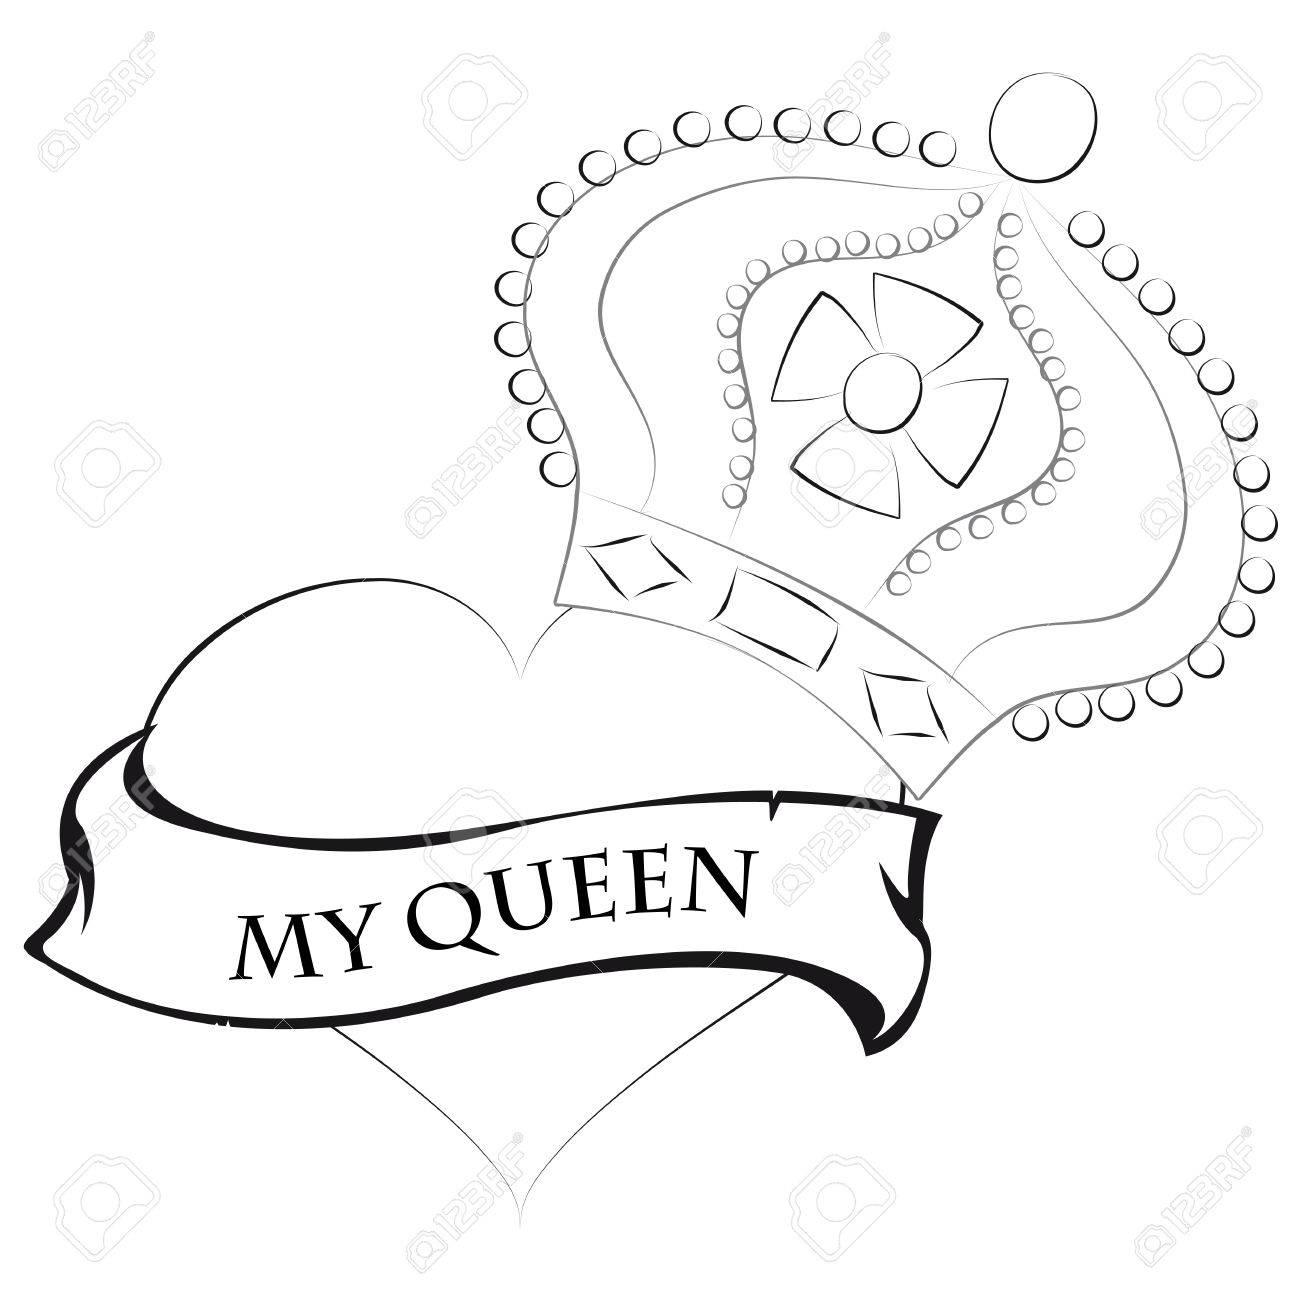 Pencil drawing of a heart shape with a queen crown on top and